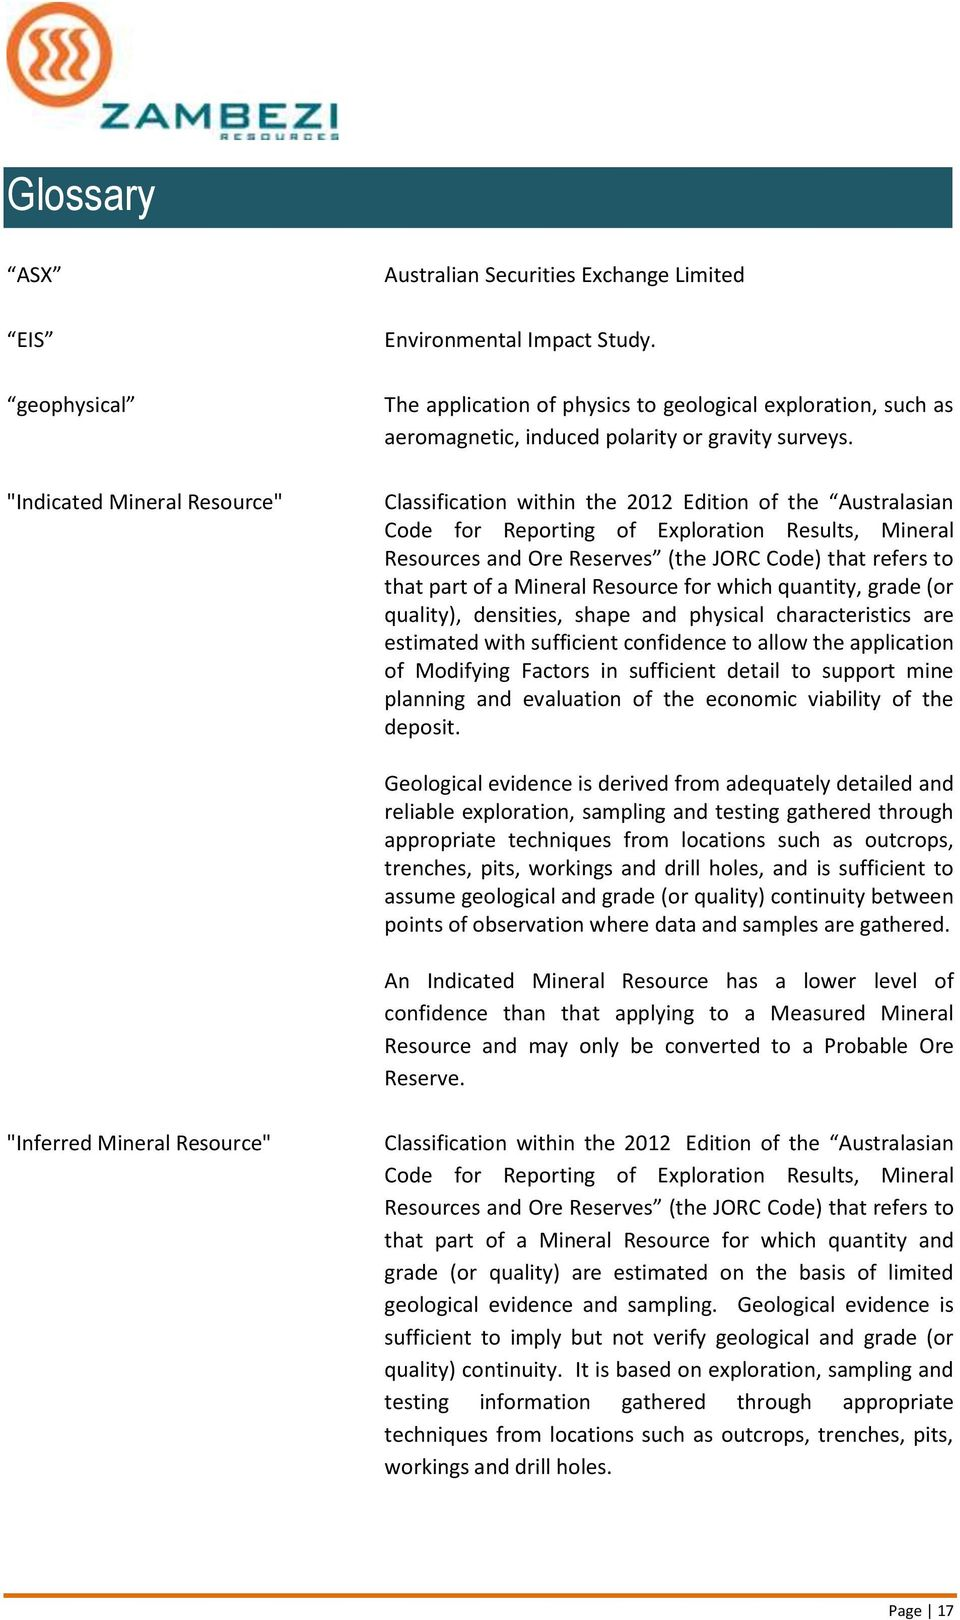 Classification within the 2012 Edition of the Australasian Code for Reporting of Exploration Results, Mineral Resources and Ore Reserves (the JORC Code) that refers to that part of a Mineral Resource